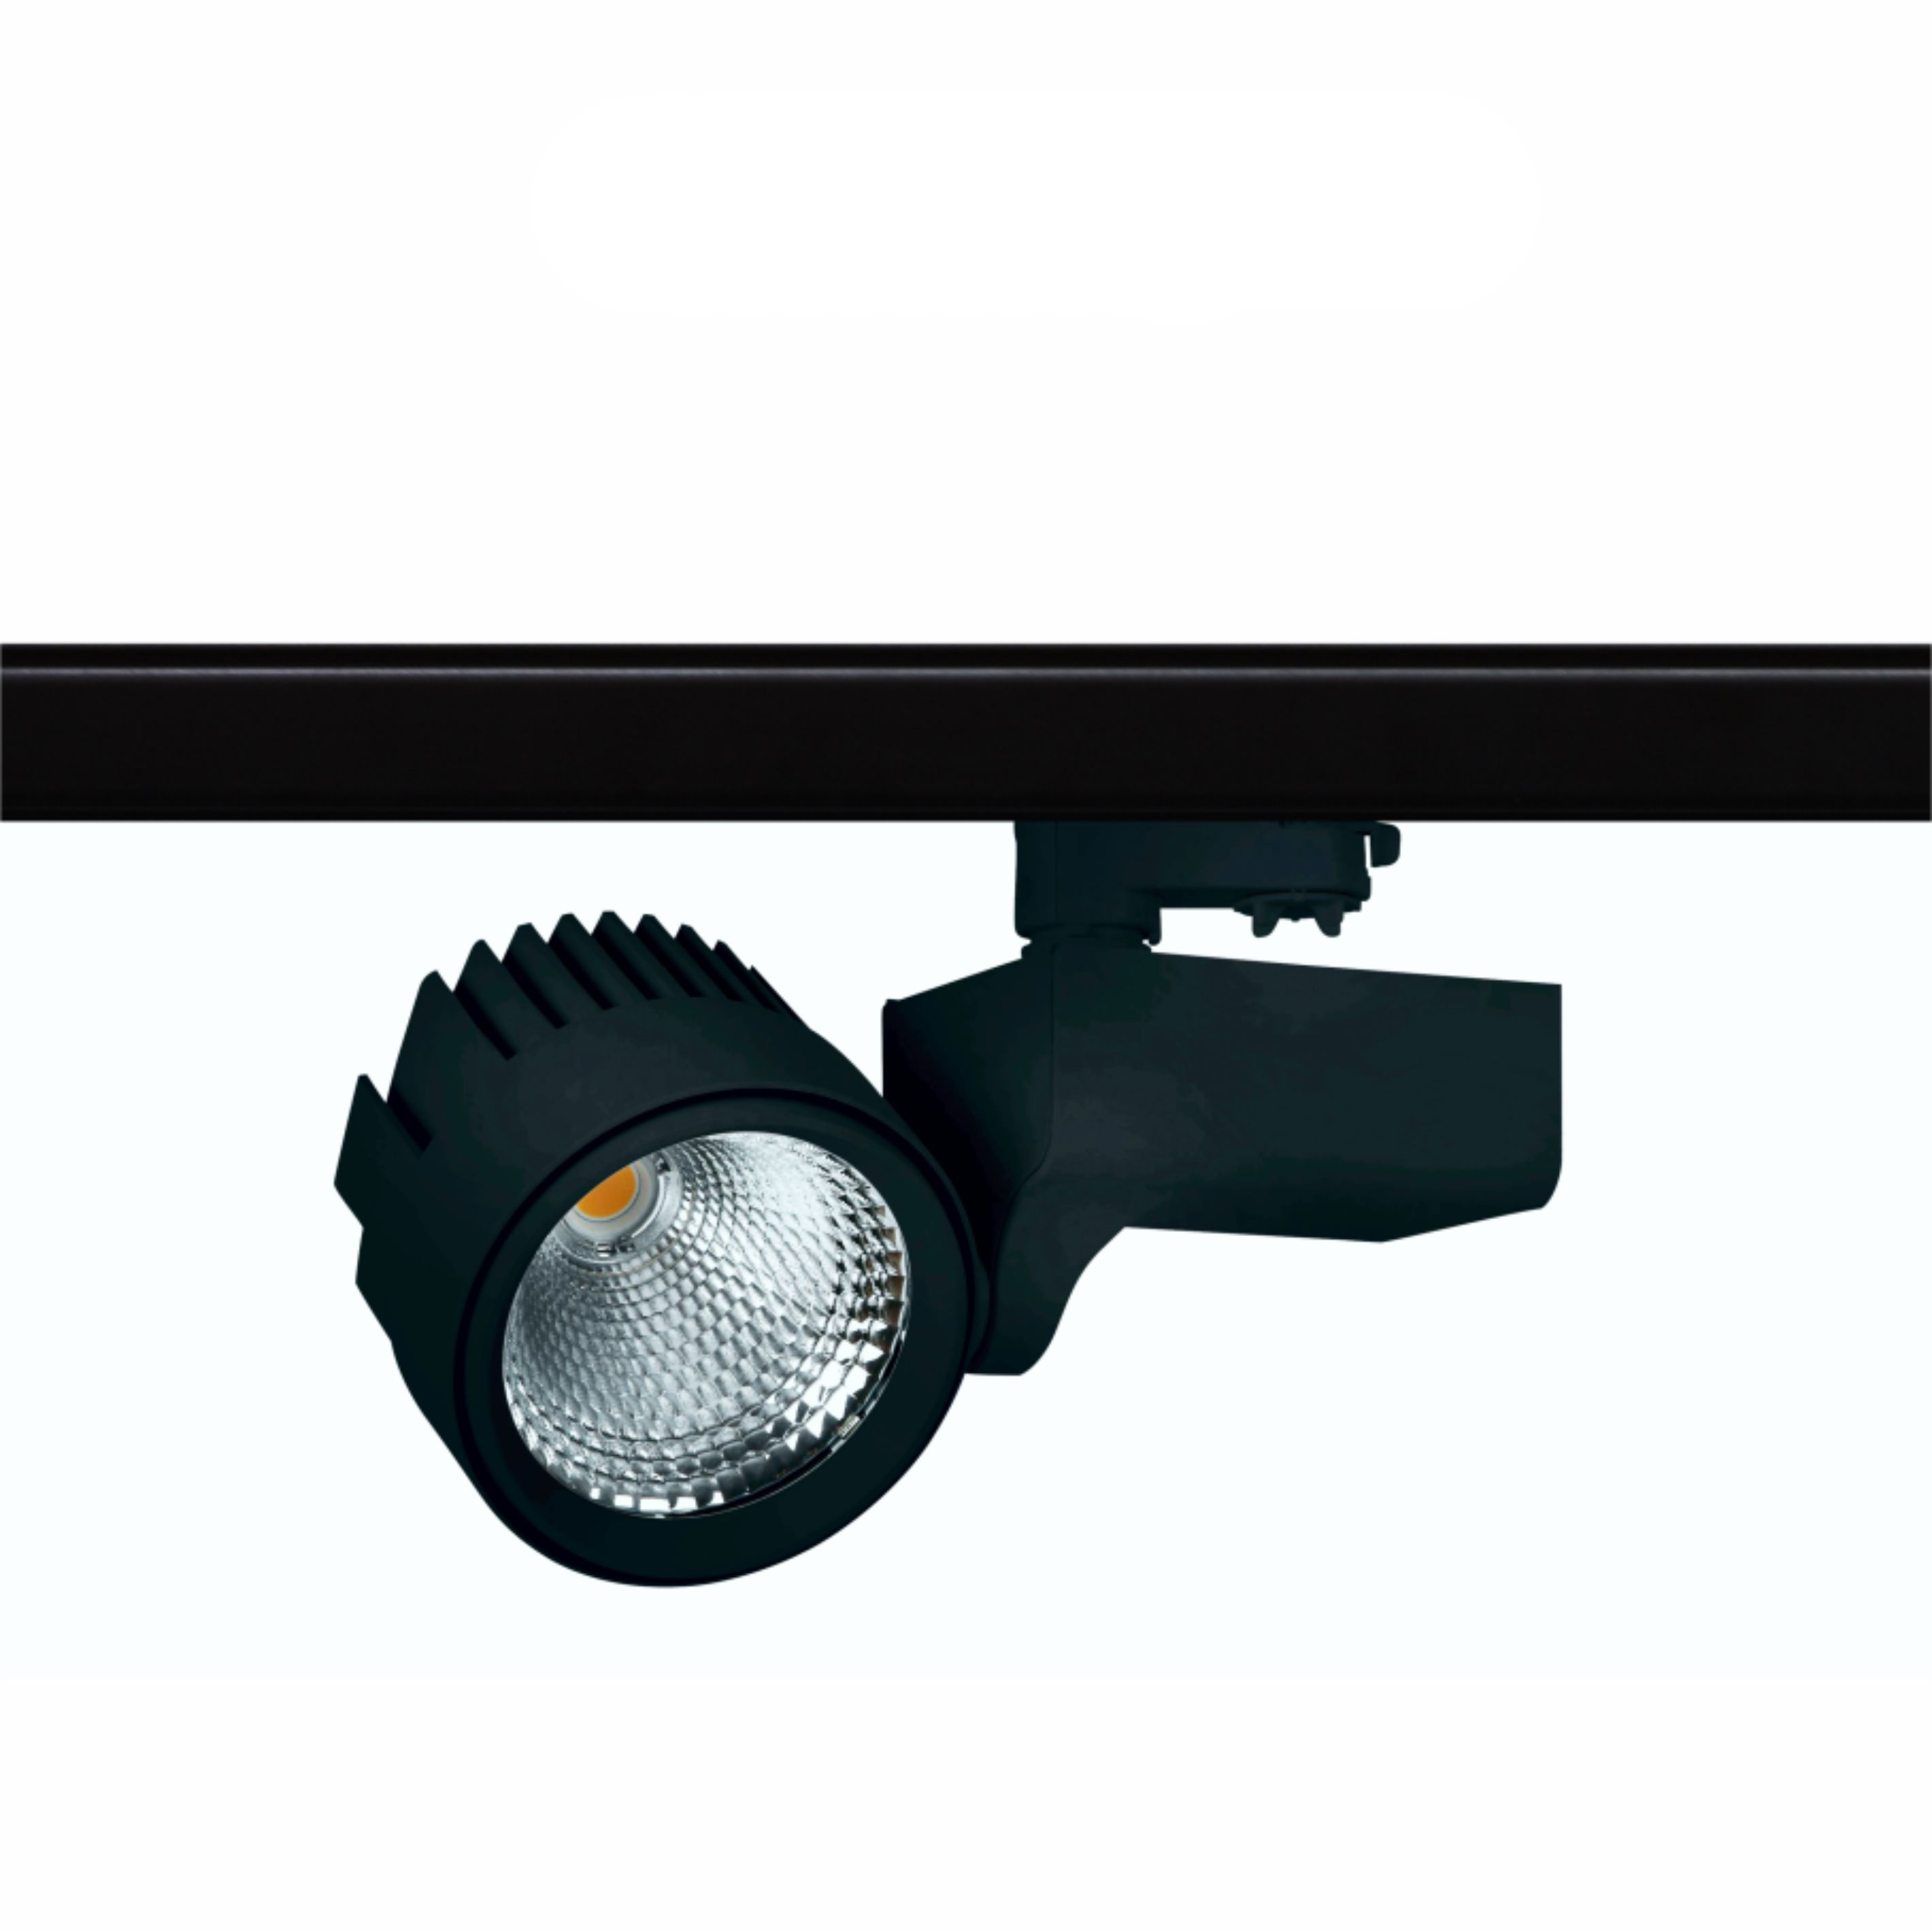 Tracklight LEM 42 Watt Beneito Faure en vente chez CONNECTILED